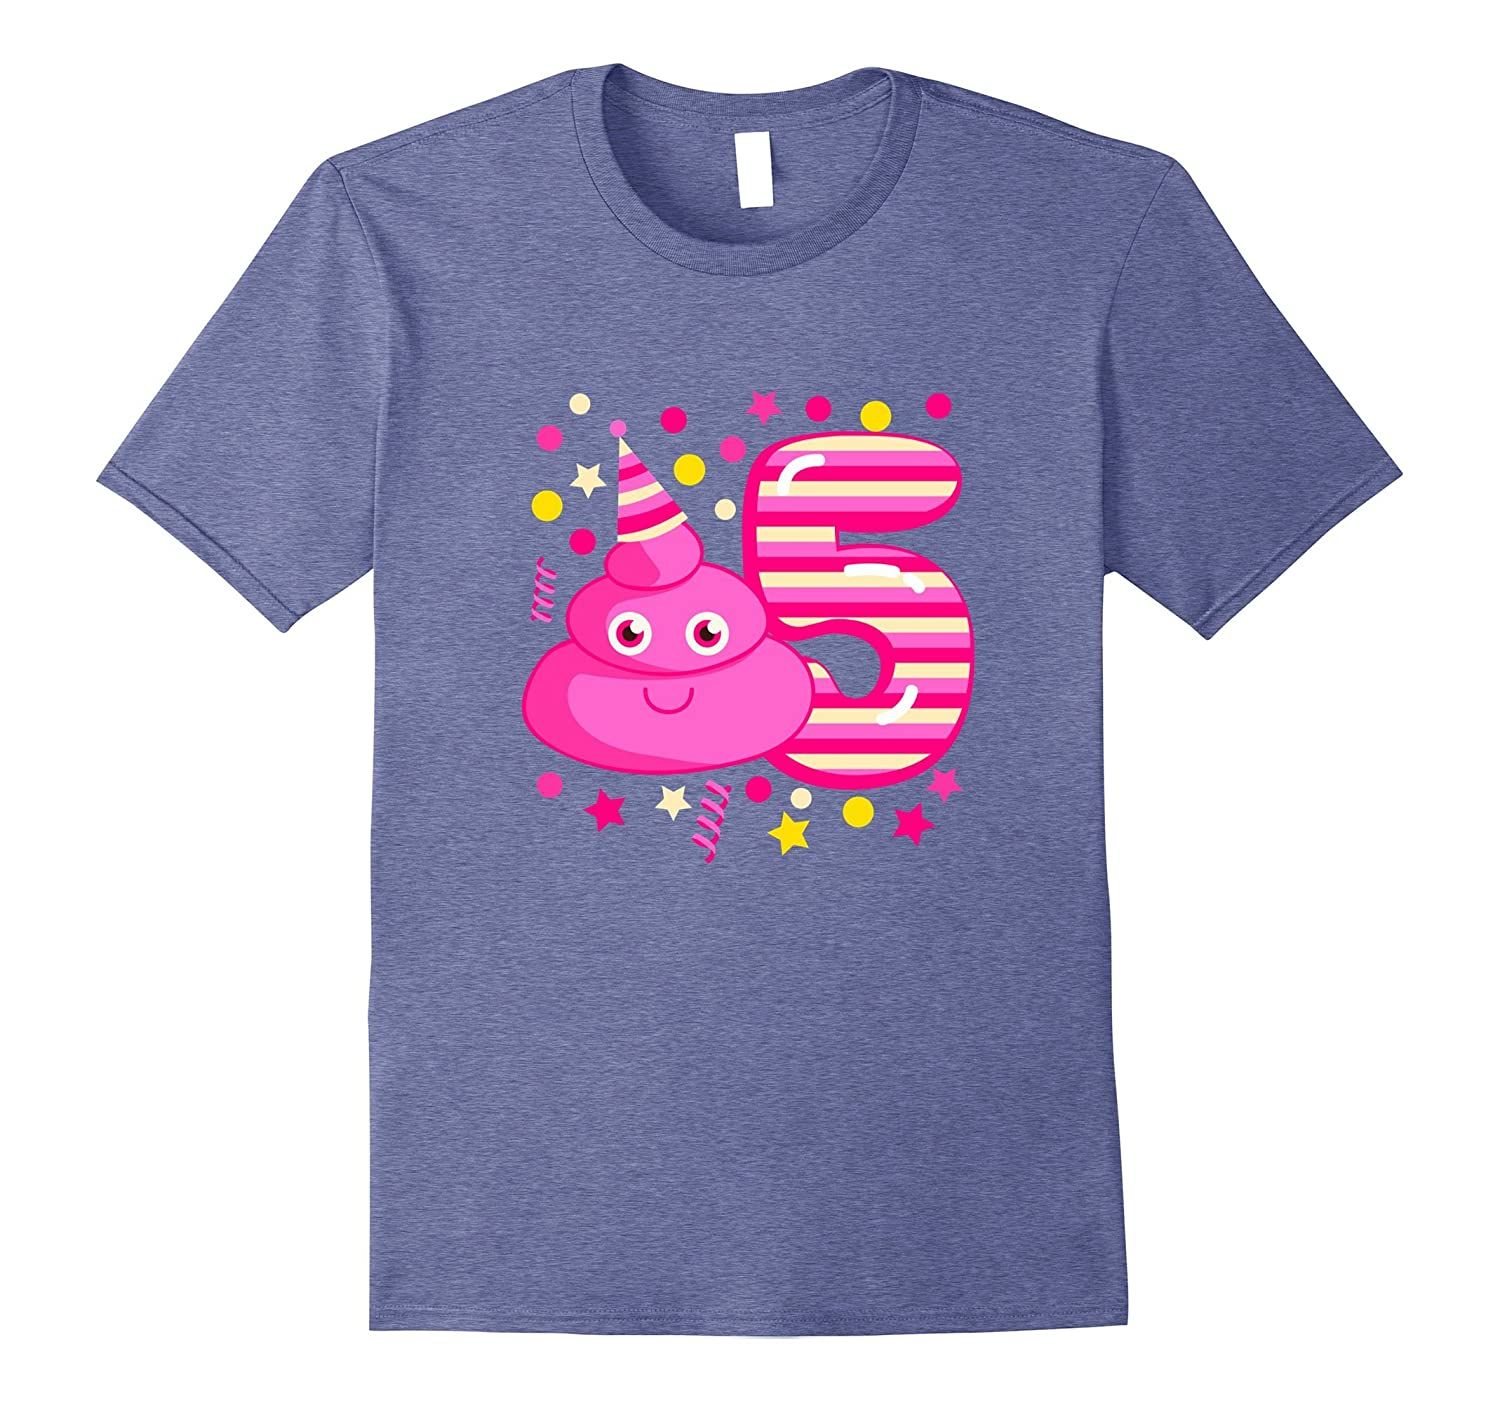 Kids Poop Emoji Birthday Shirt Five Years Old Funny Poo Tee Vaci